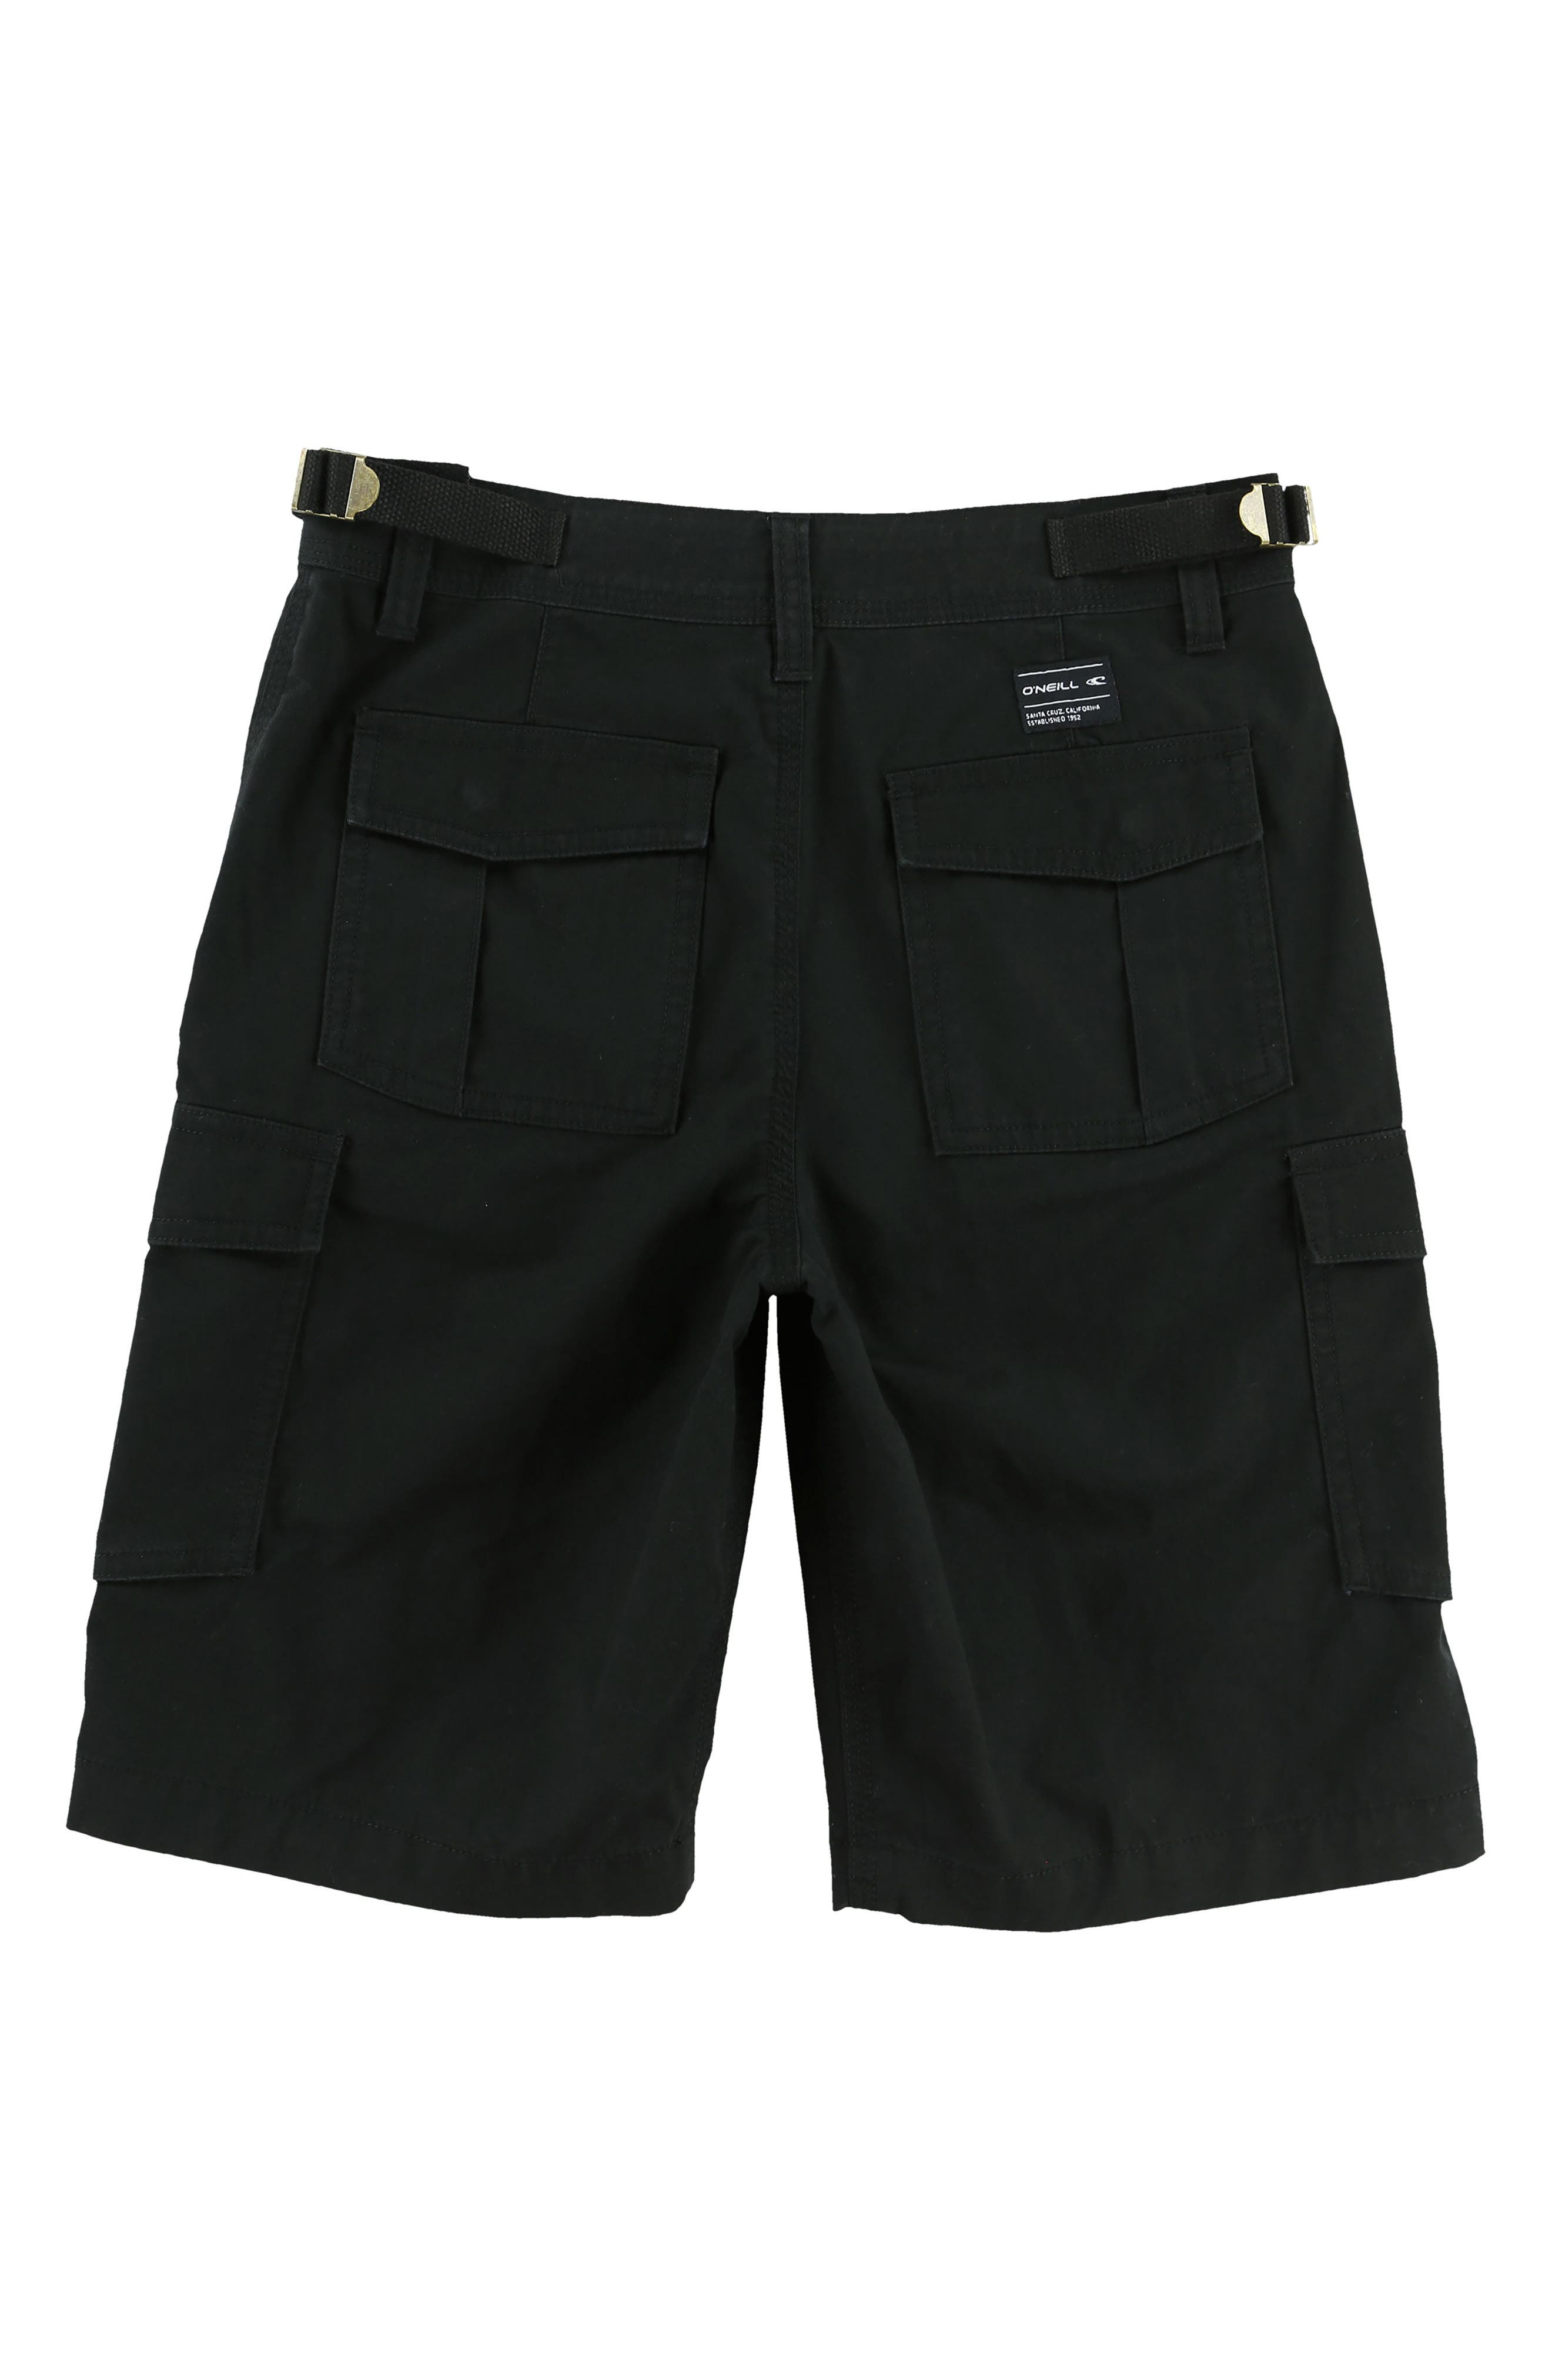 El Toro Cargo Shorts,                         Main,                         color, 001